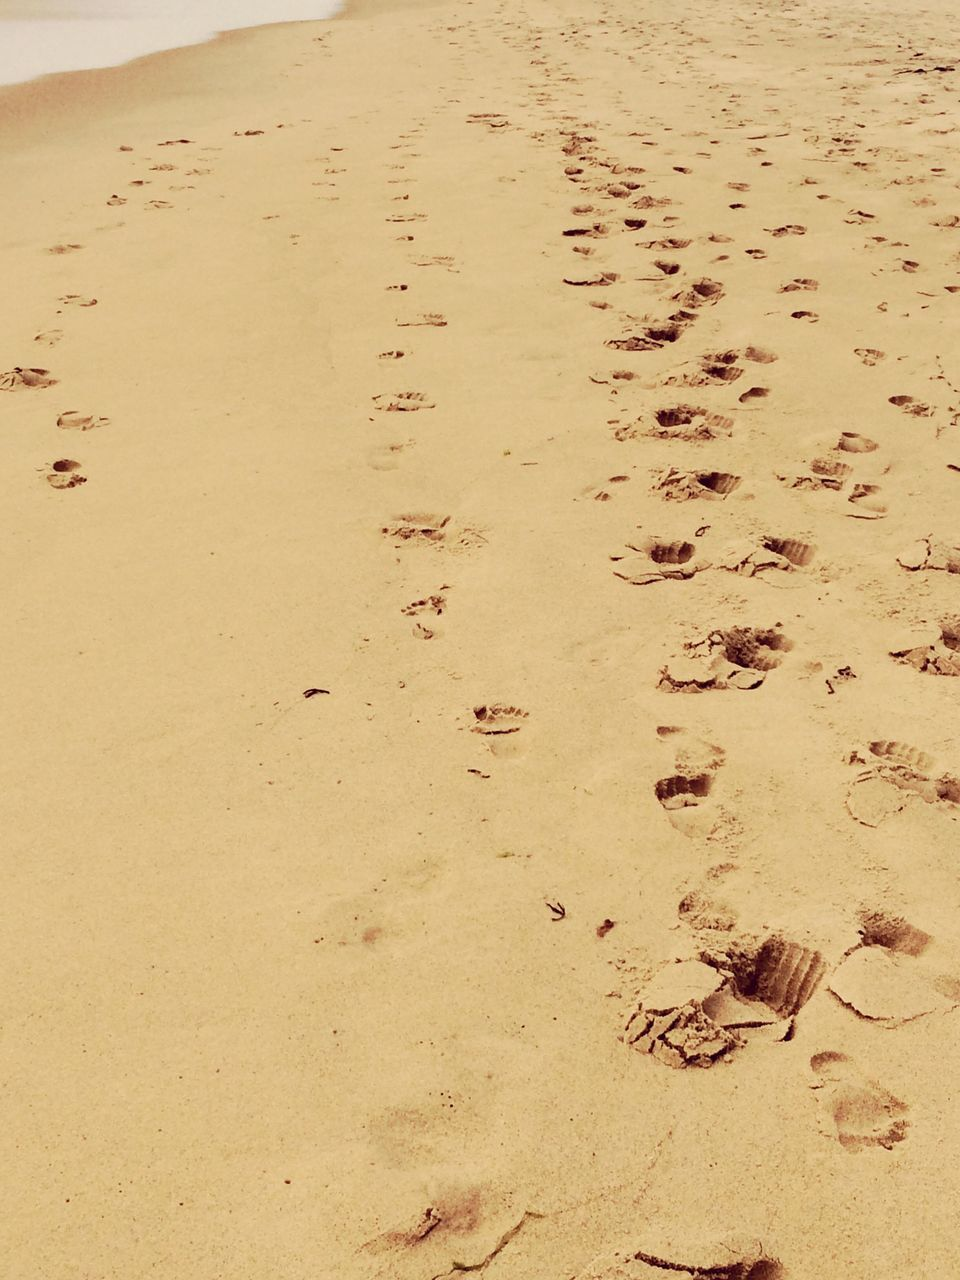 sand, beach, footprint, paw print, animal track, nature, high angle view, day, no people, outdoors, track - imprint, animal themes, close-up, sand dune